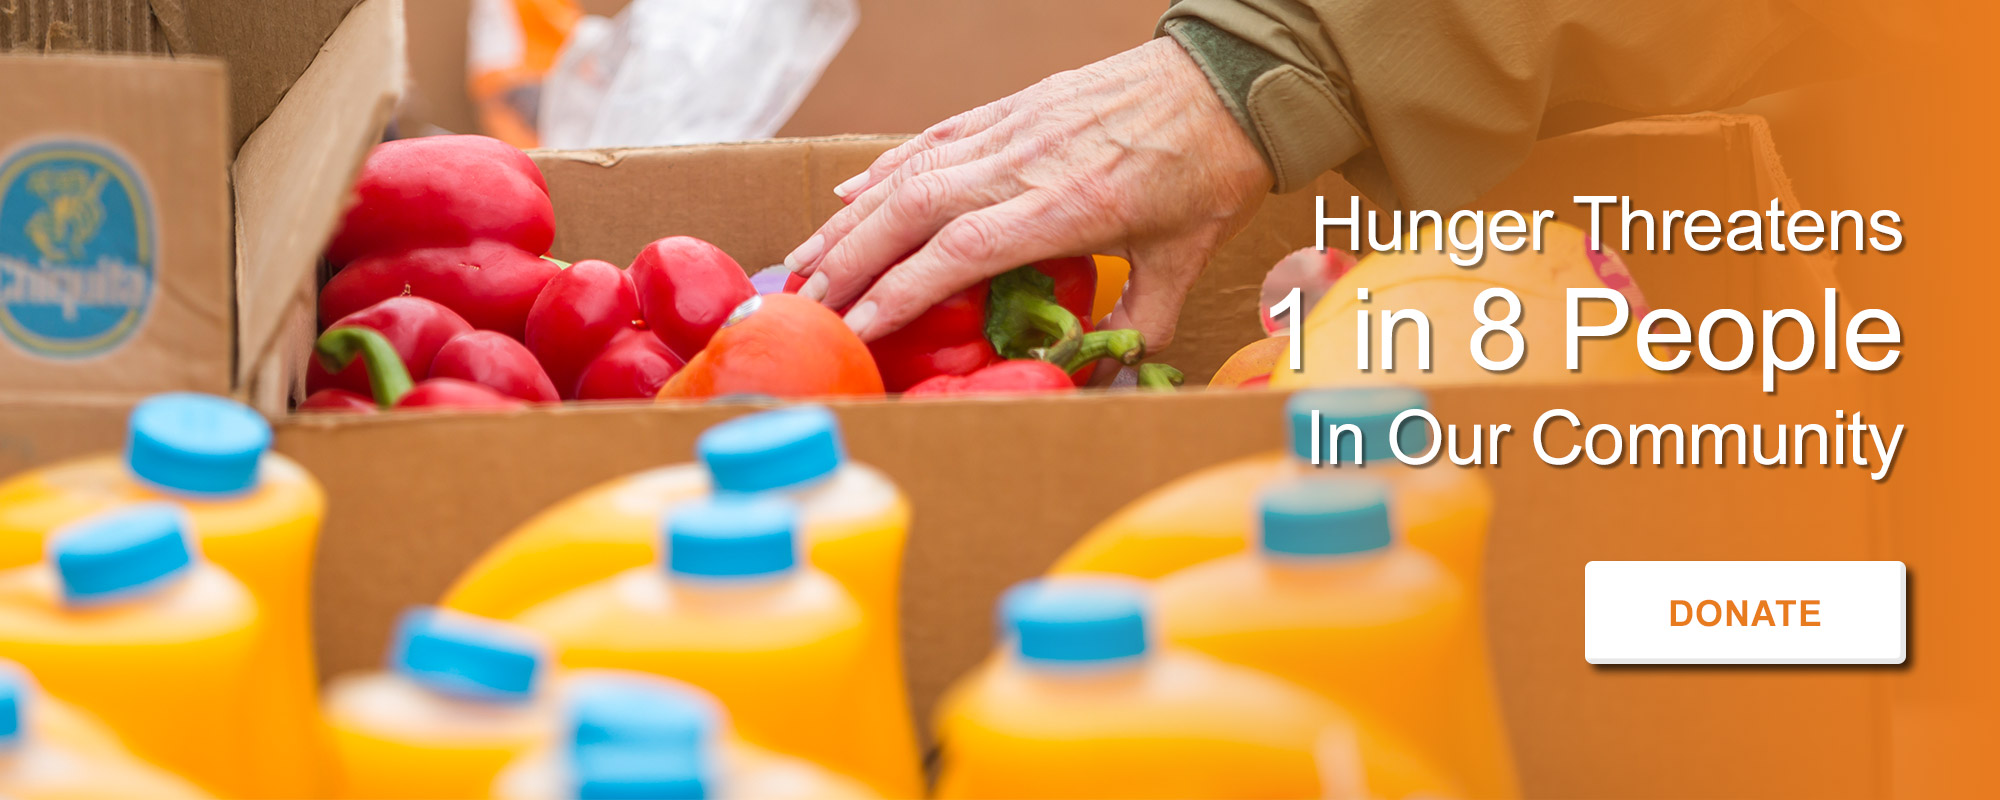 Hunger Threatens 1 in 8 people in our community. Donate Today.